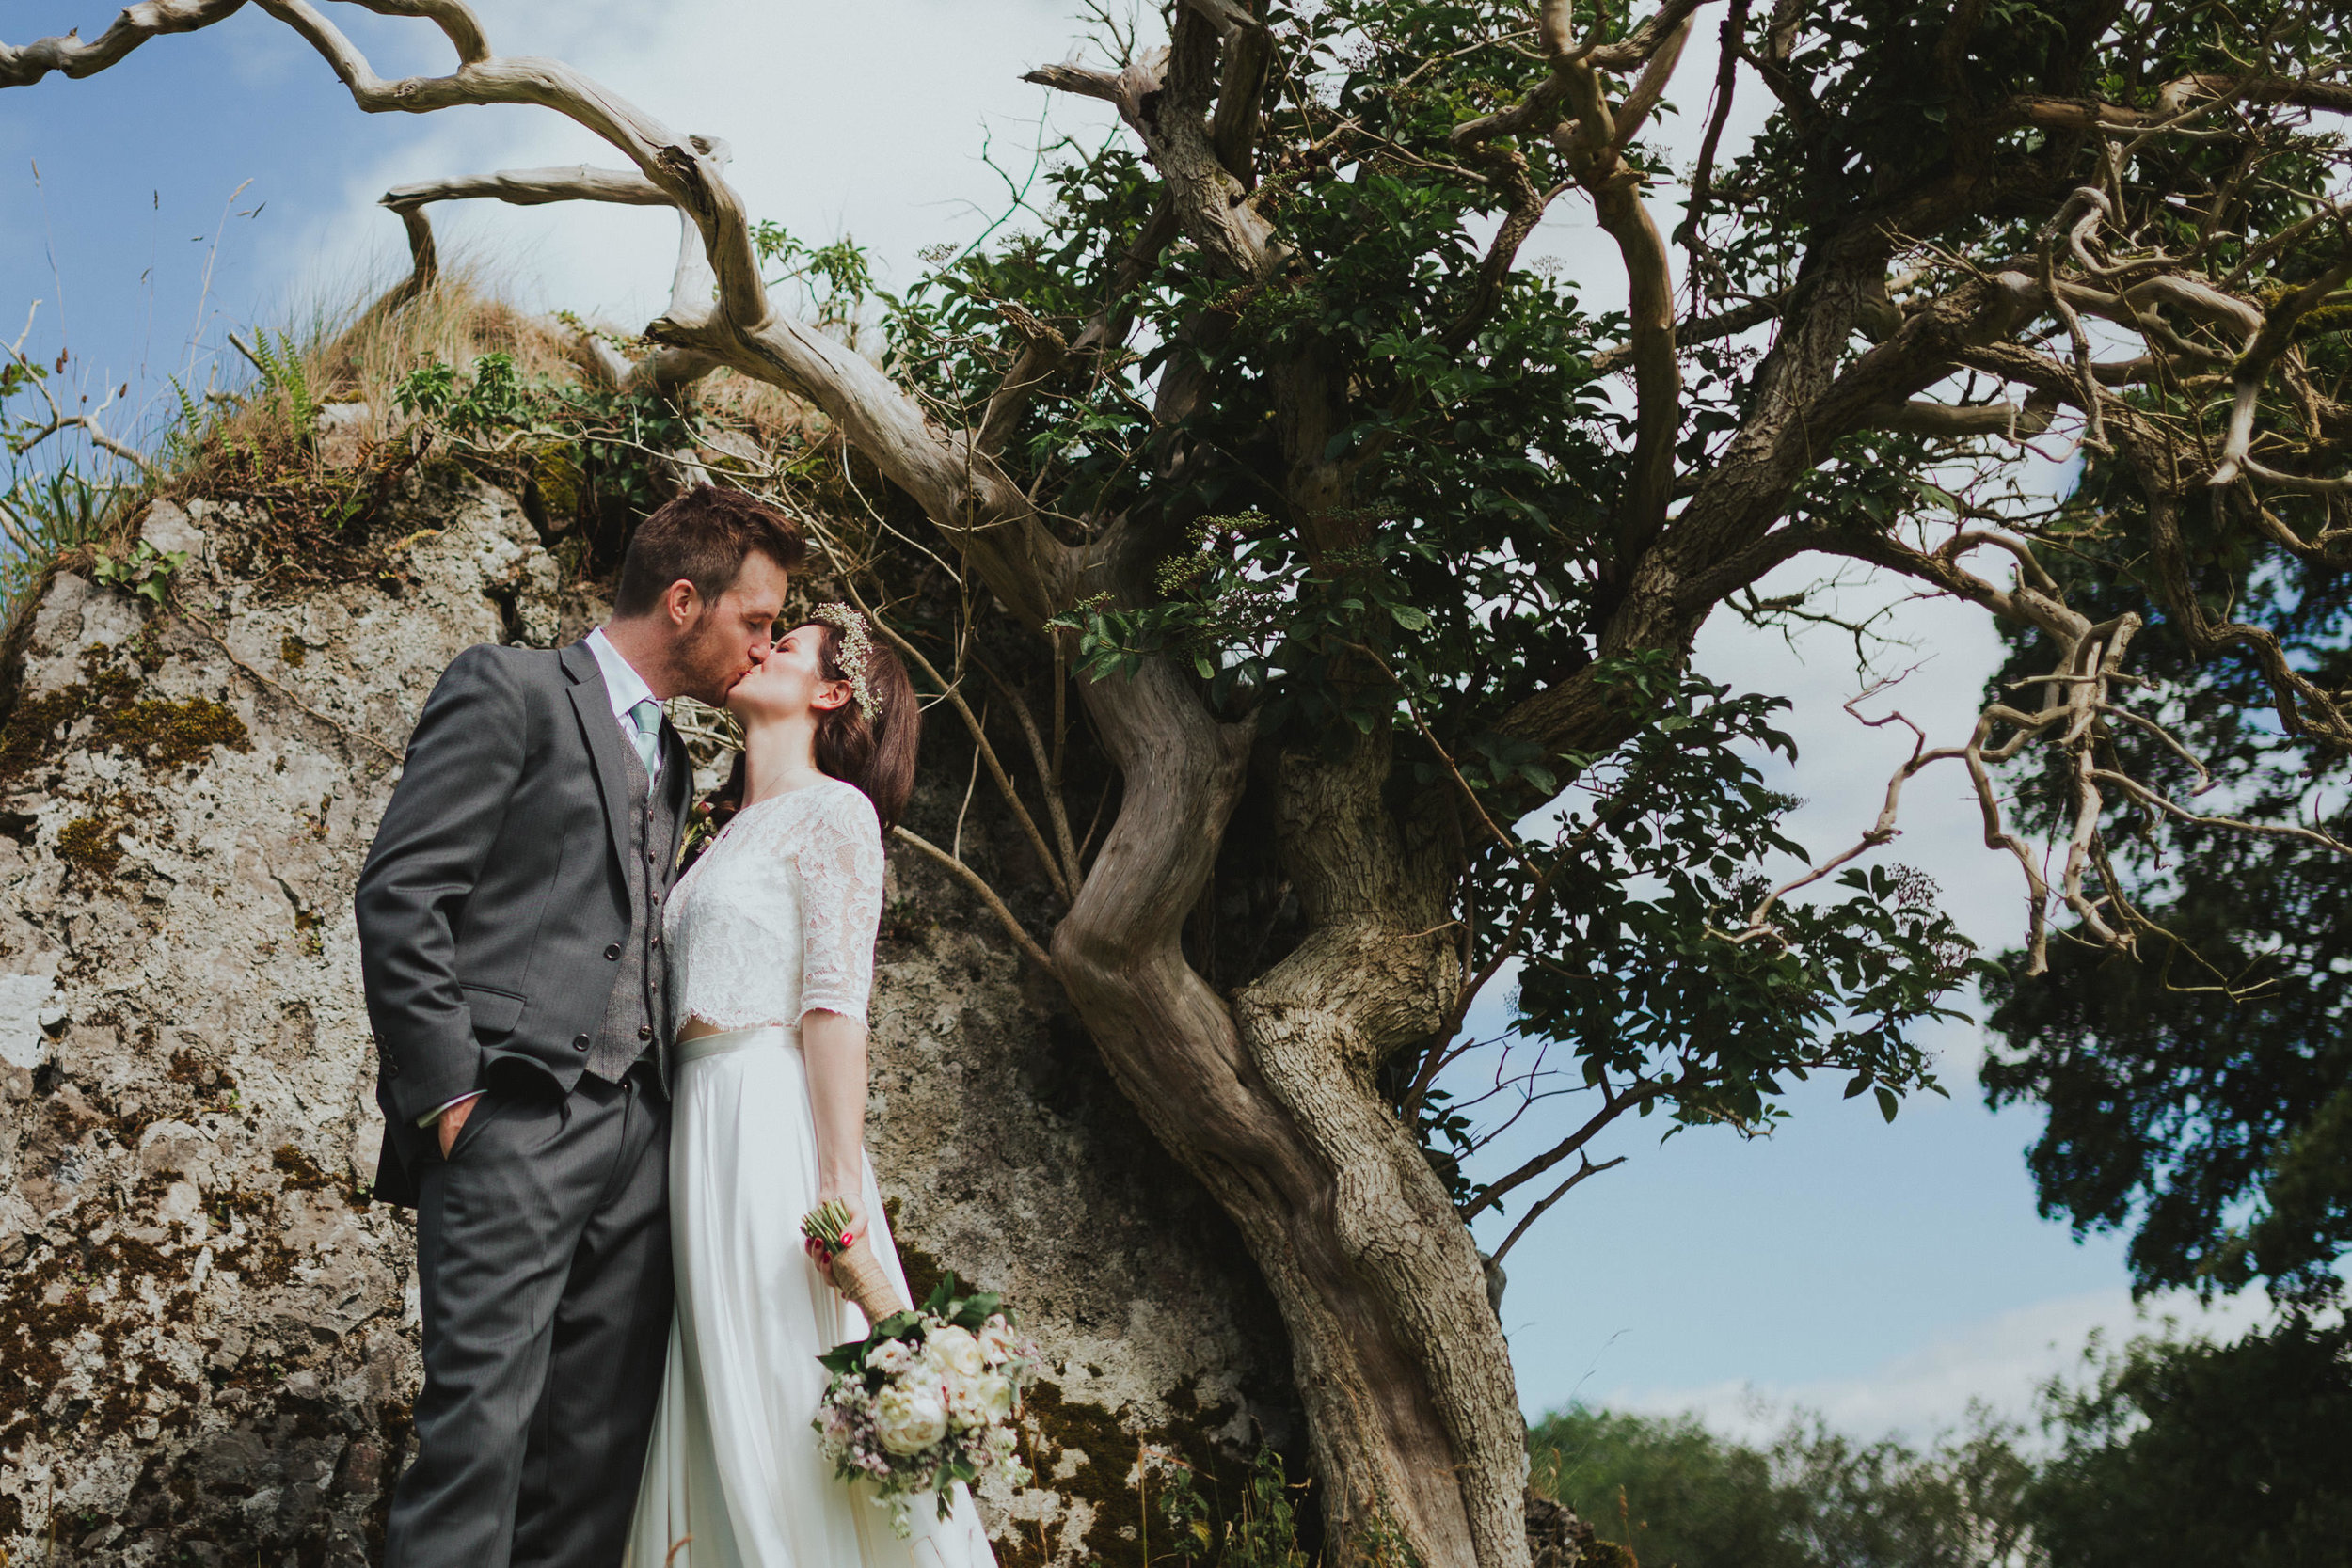 a+s_temple_house_sligo_wedding_livia_figueiredo_750.jpg